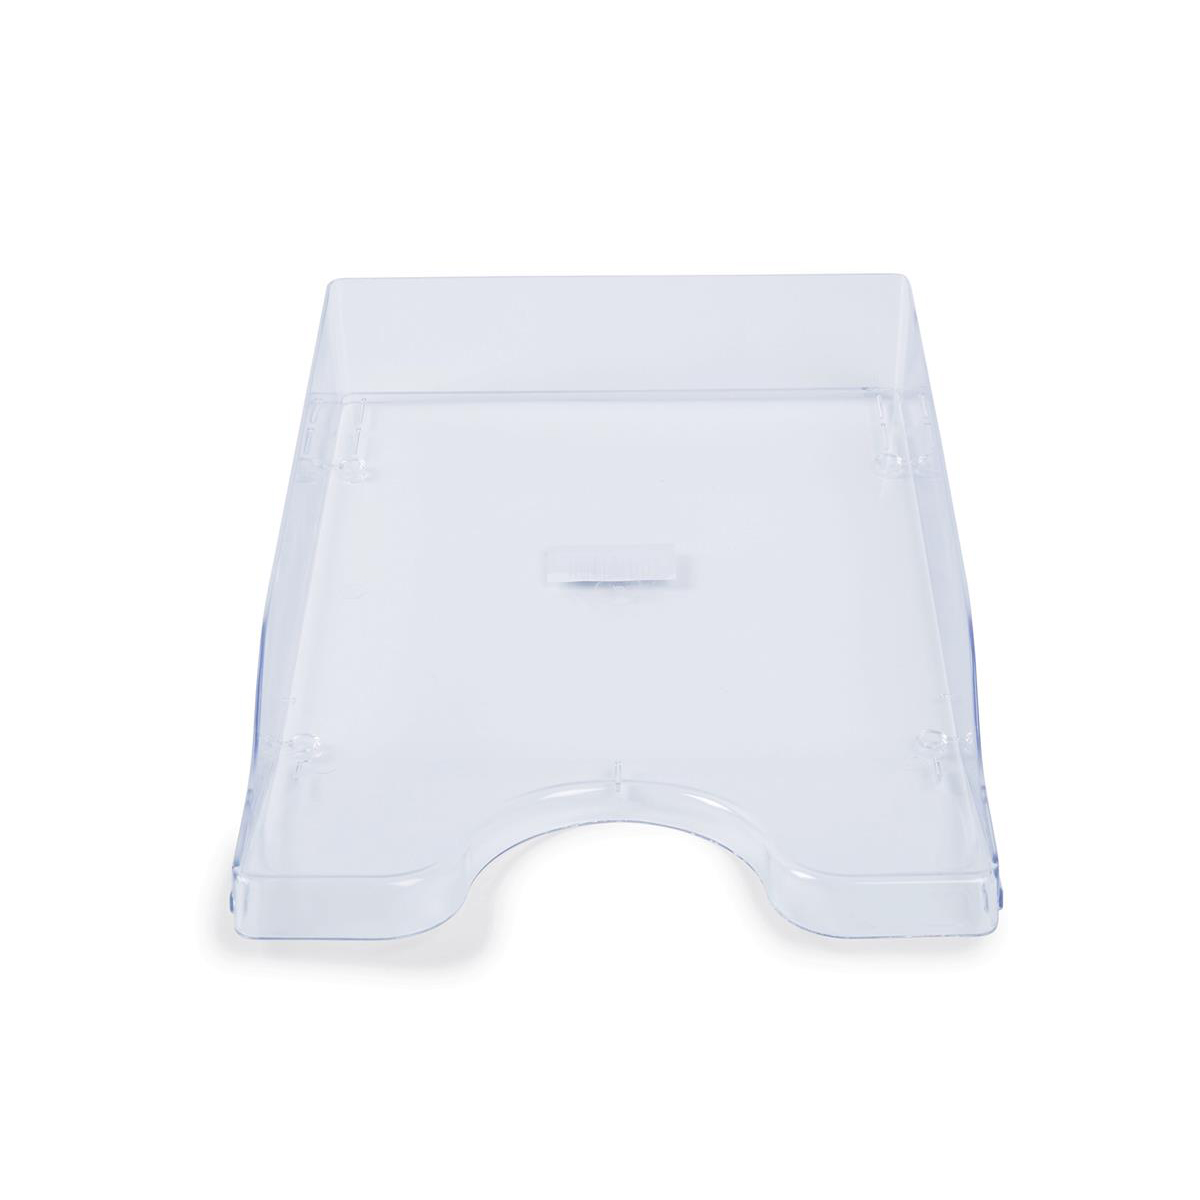 Continental Letter Tray Polystyrene for A4 Foolscap and Computer Printouts Crystal Clear